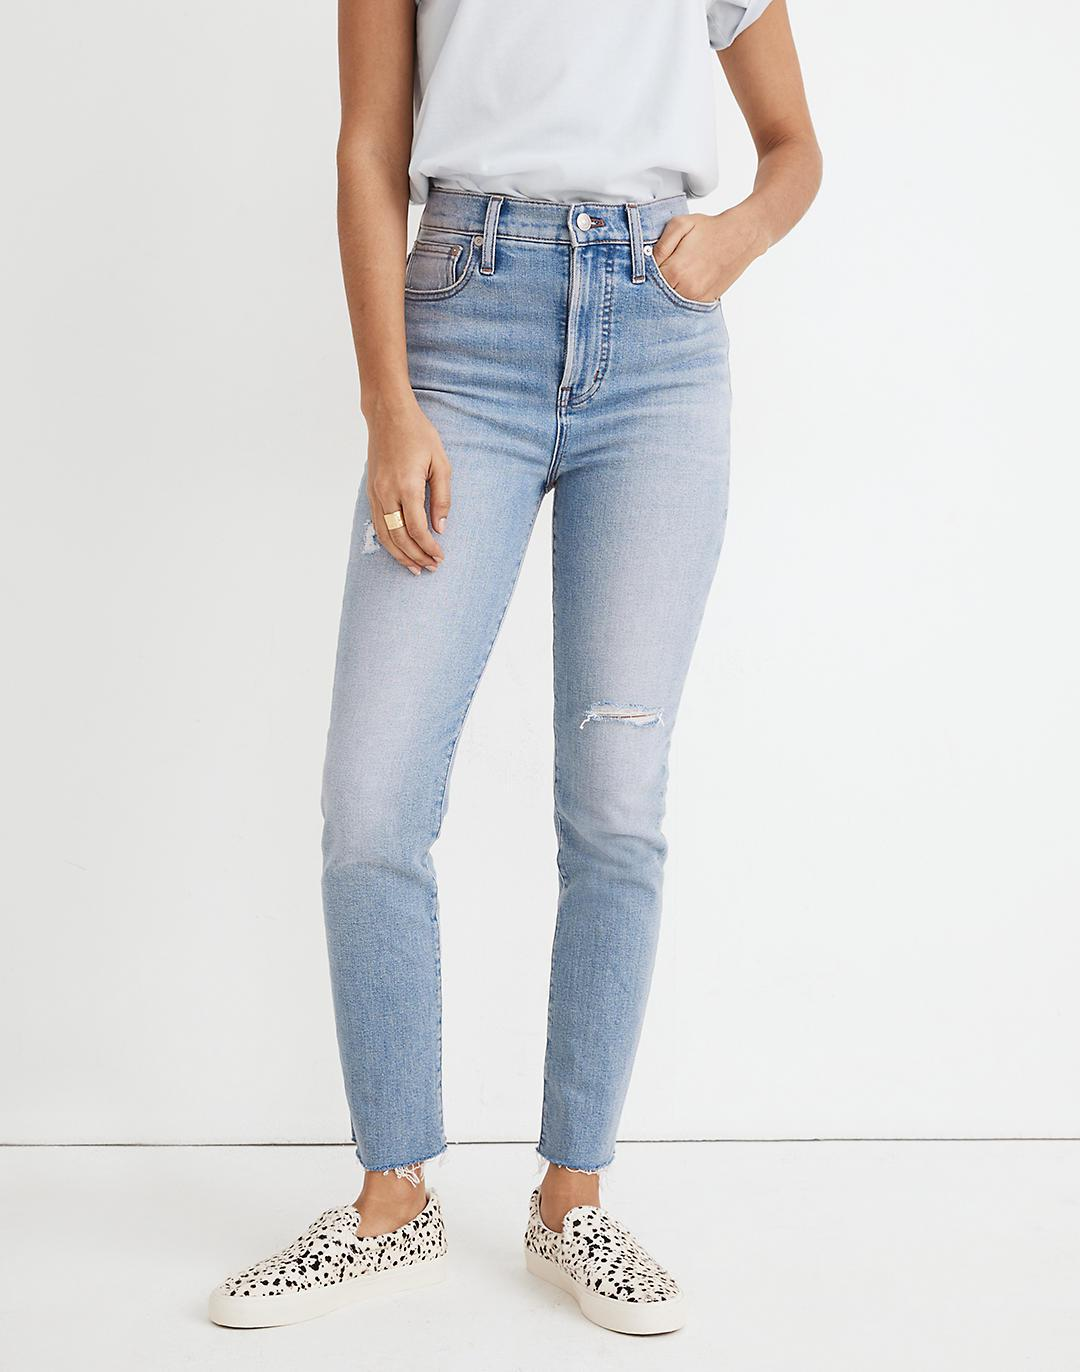 The Tall Perfect Vintage Jean in Coffey Wash: Worn-In Edition 3